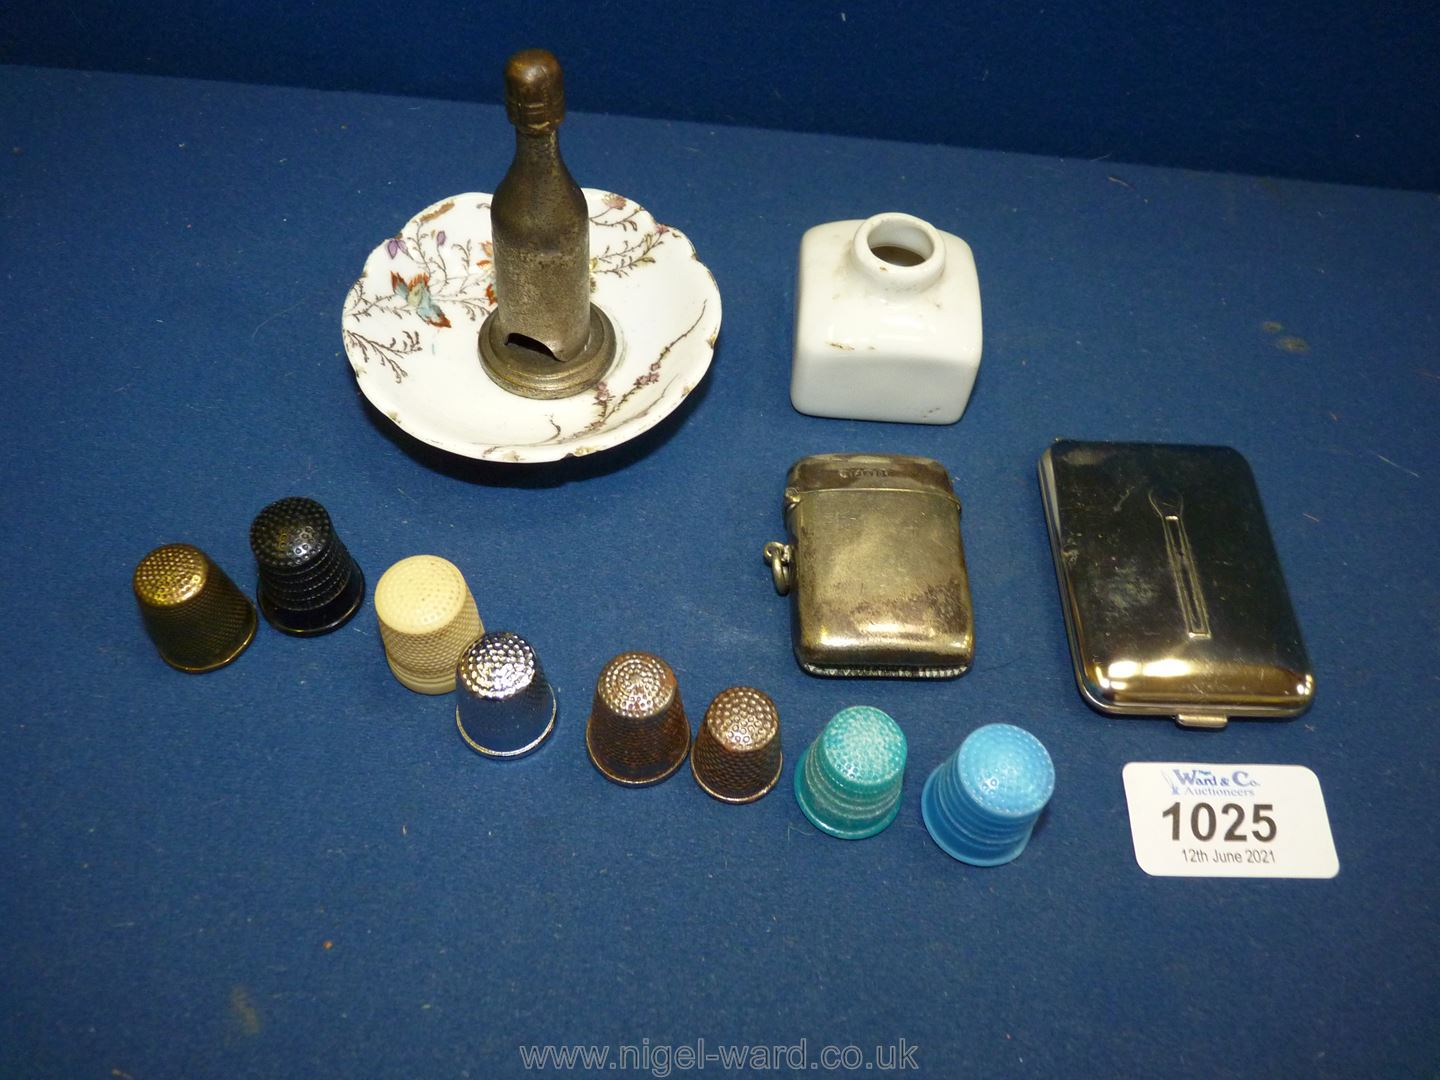 A cigar Cutter in the form of a bottle of champagne in a ceramic dish, seven thimbles,